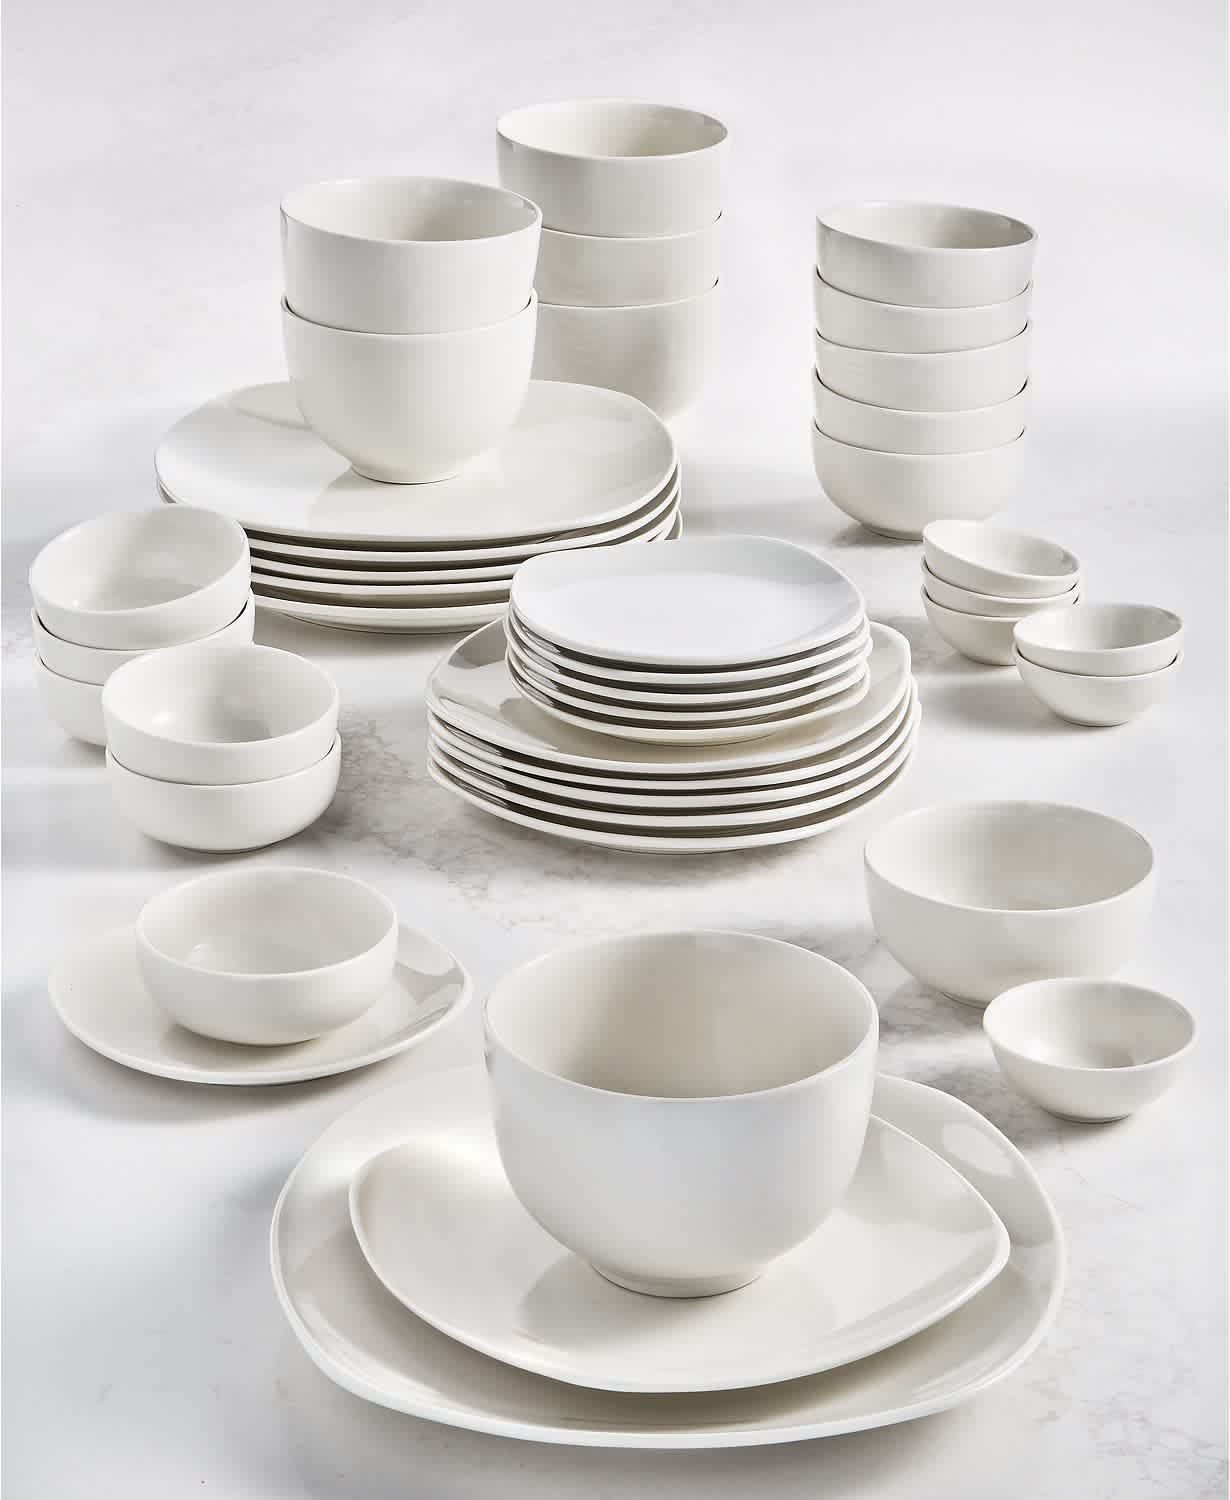 Tabletops Unlimited Inspiration by Denmark Soft Square 42-Piece Dinnerware Set